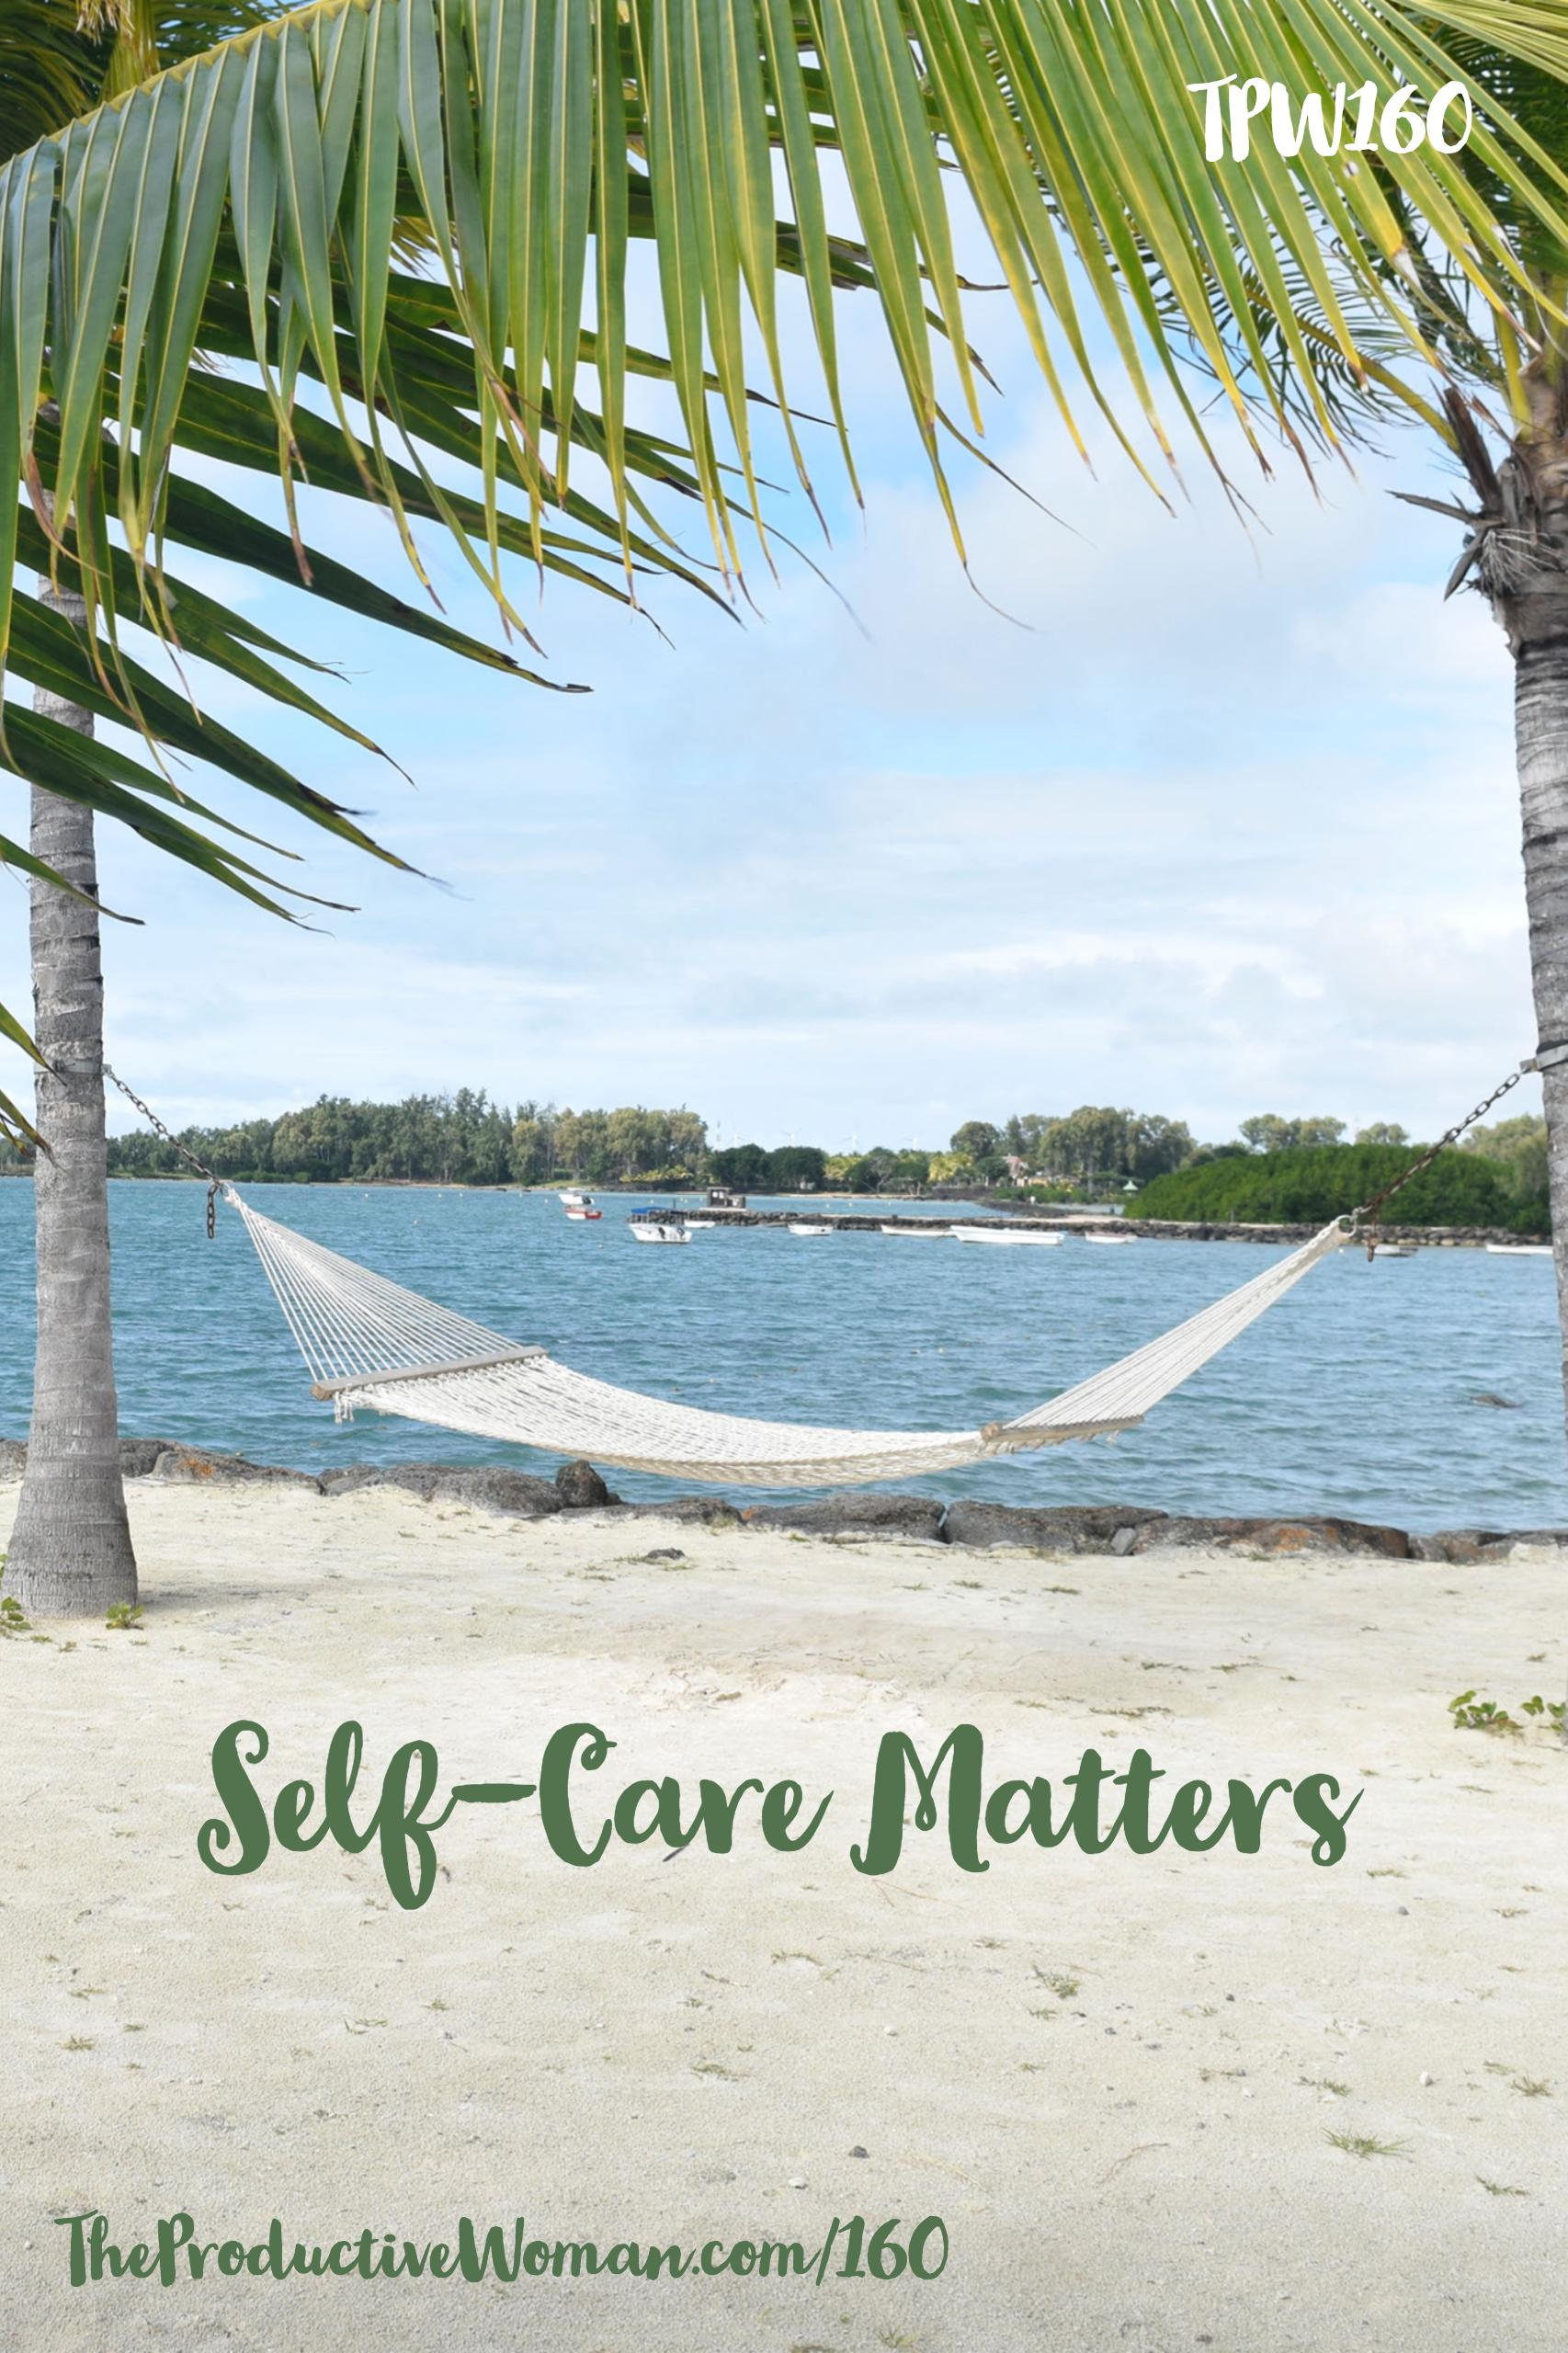 How can we make time for self-care in an already full life--and why should we? A few thoughts in episode 160 of The Productive Woman podcast. Find more at TheProductiveWoman.com/160.